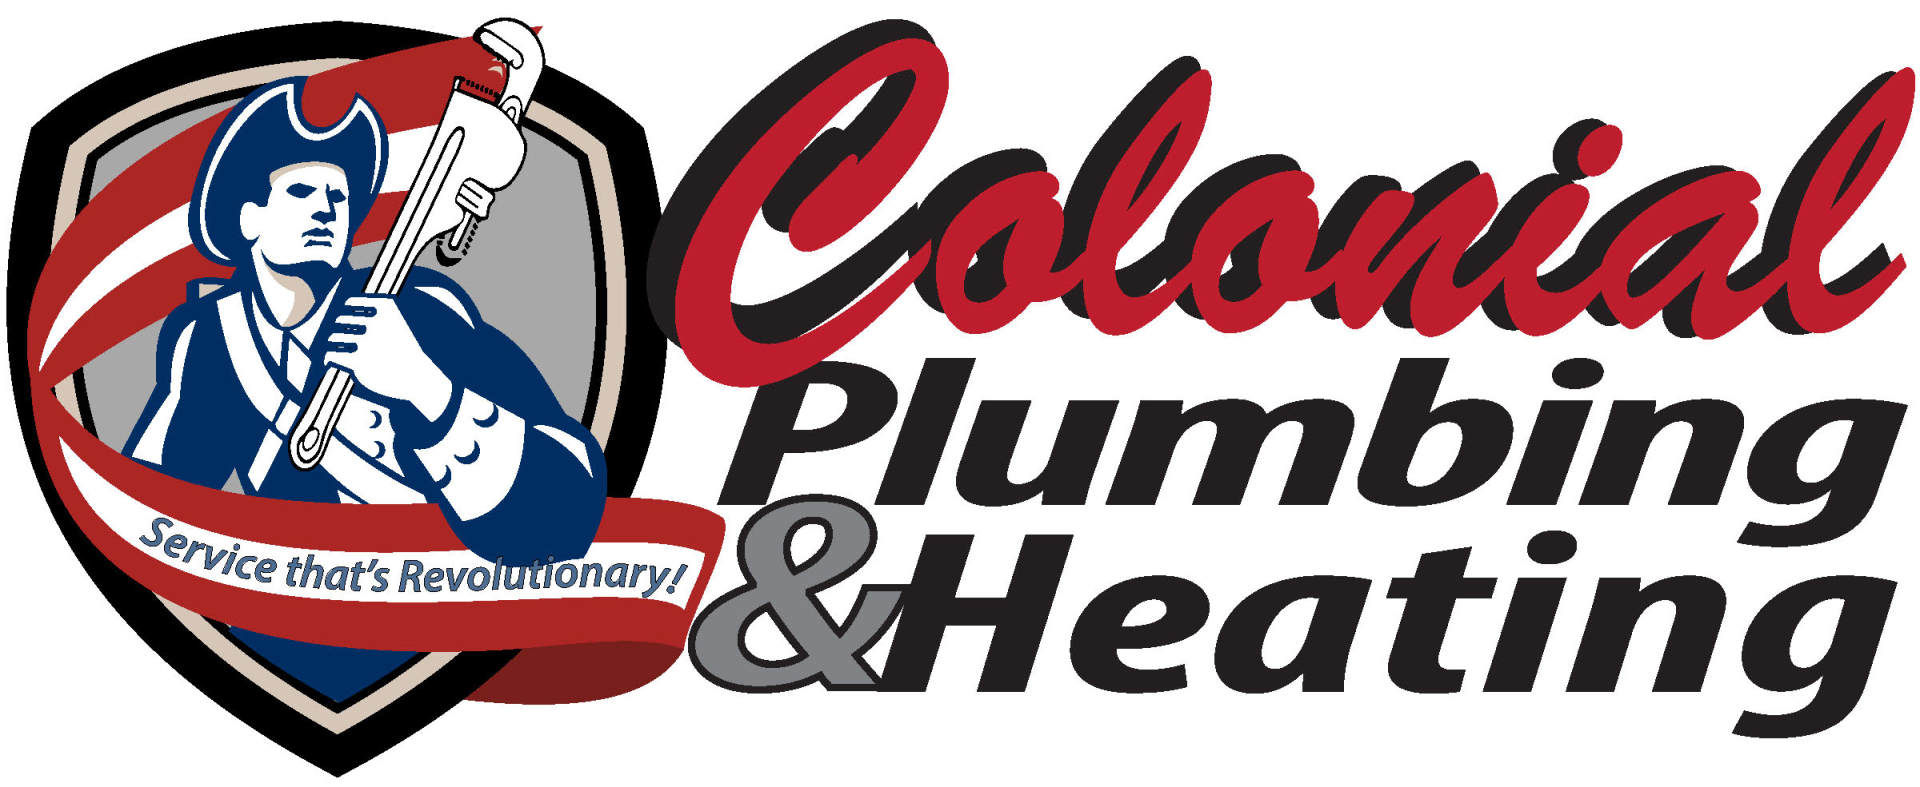 Colonial Plumbing and Heating